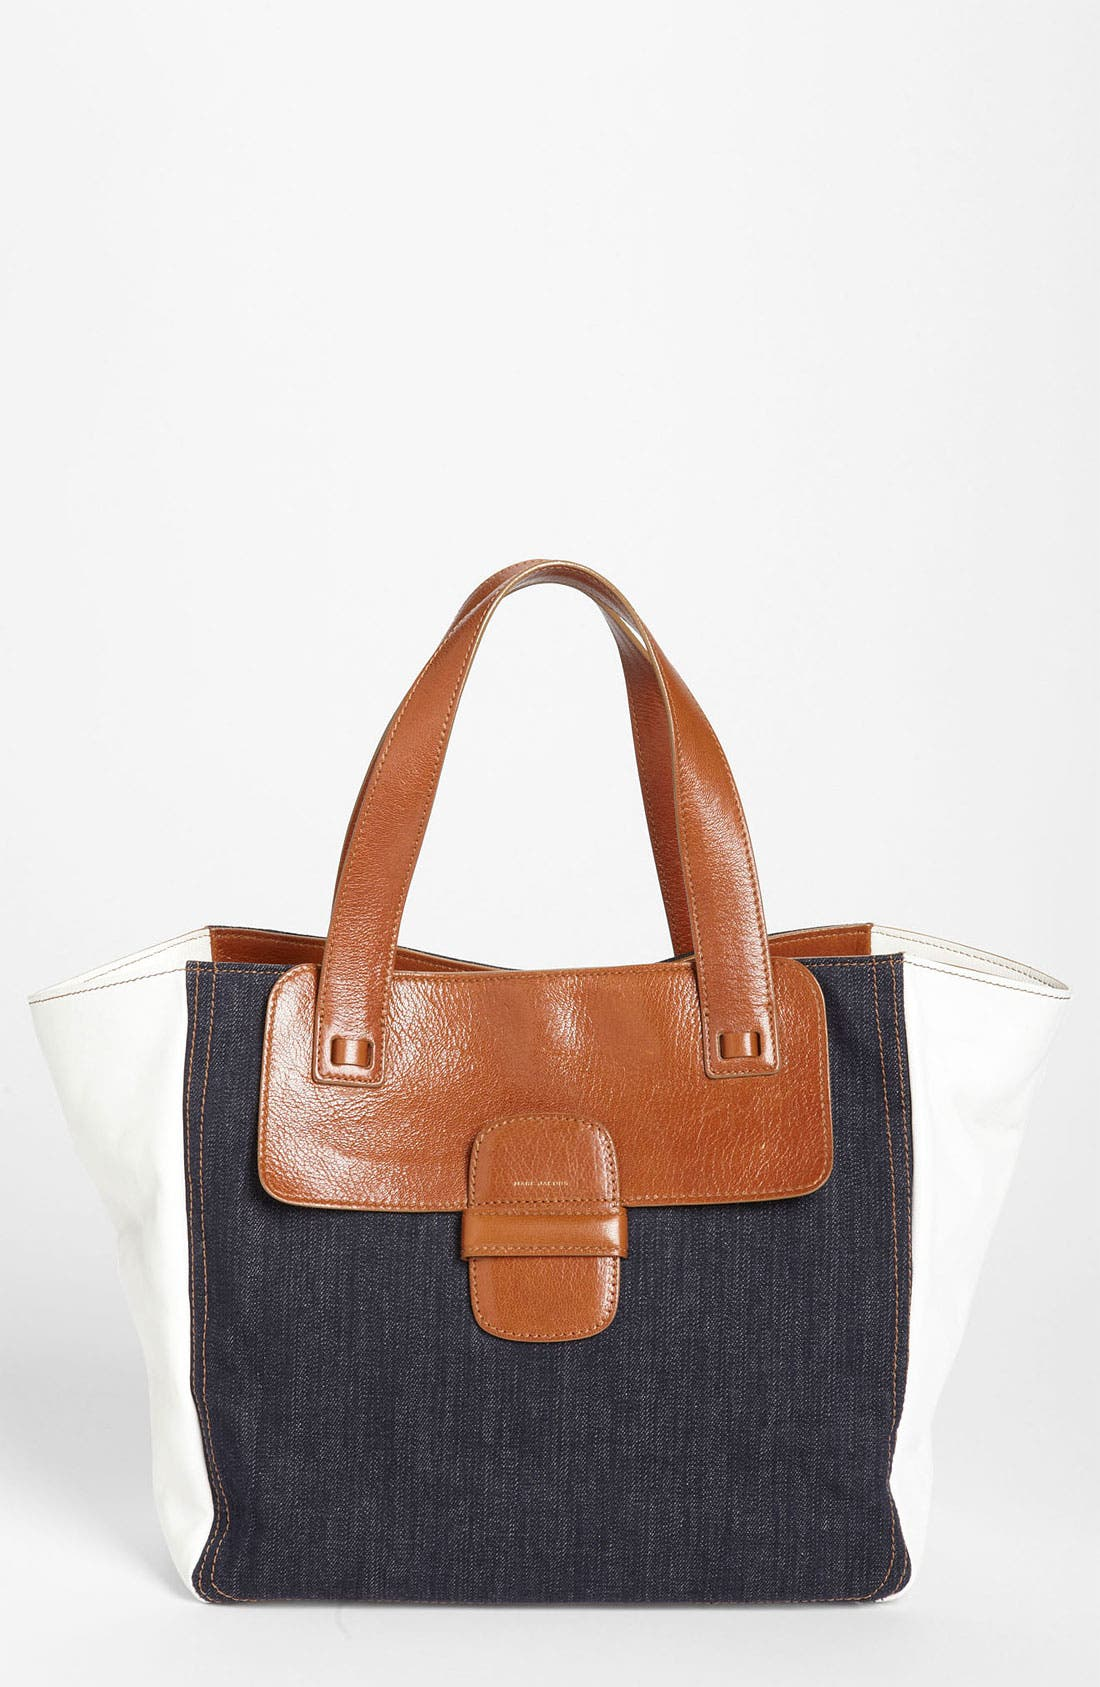 Alternate Image 1 Selected - MARC JACOBS 'Small Khaki' Denim & Leather Tote